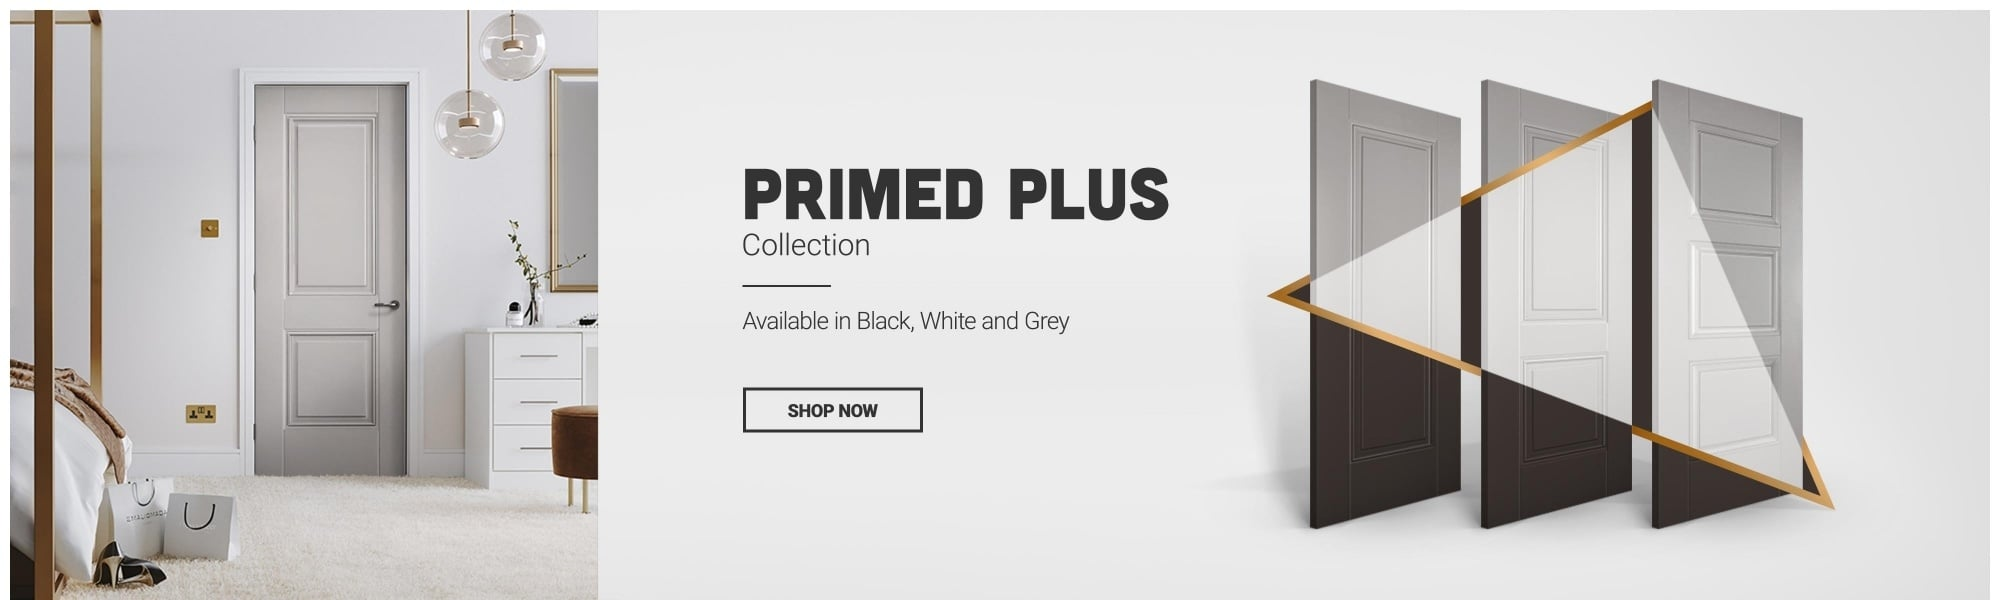 Primed Plus collection